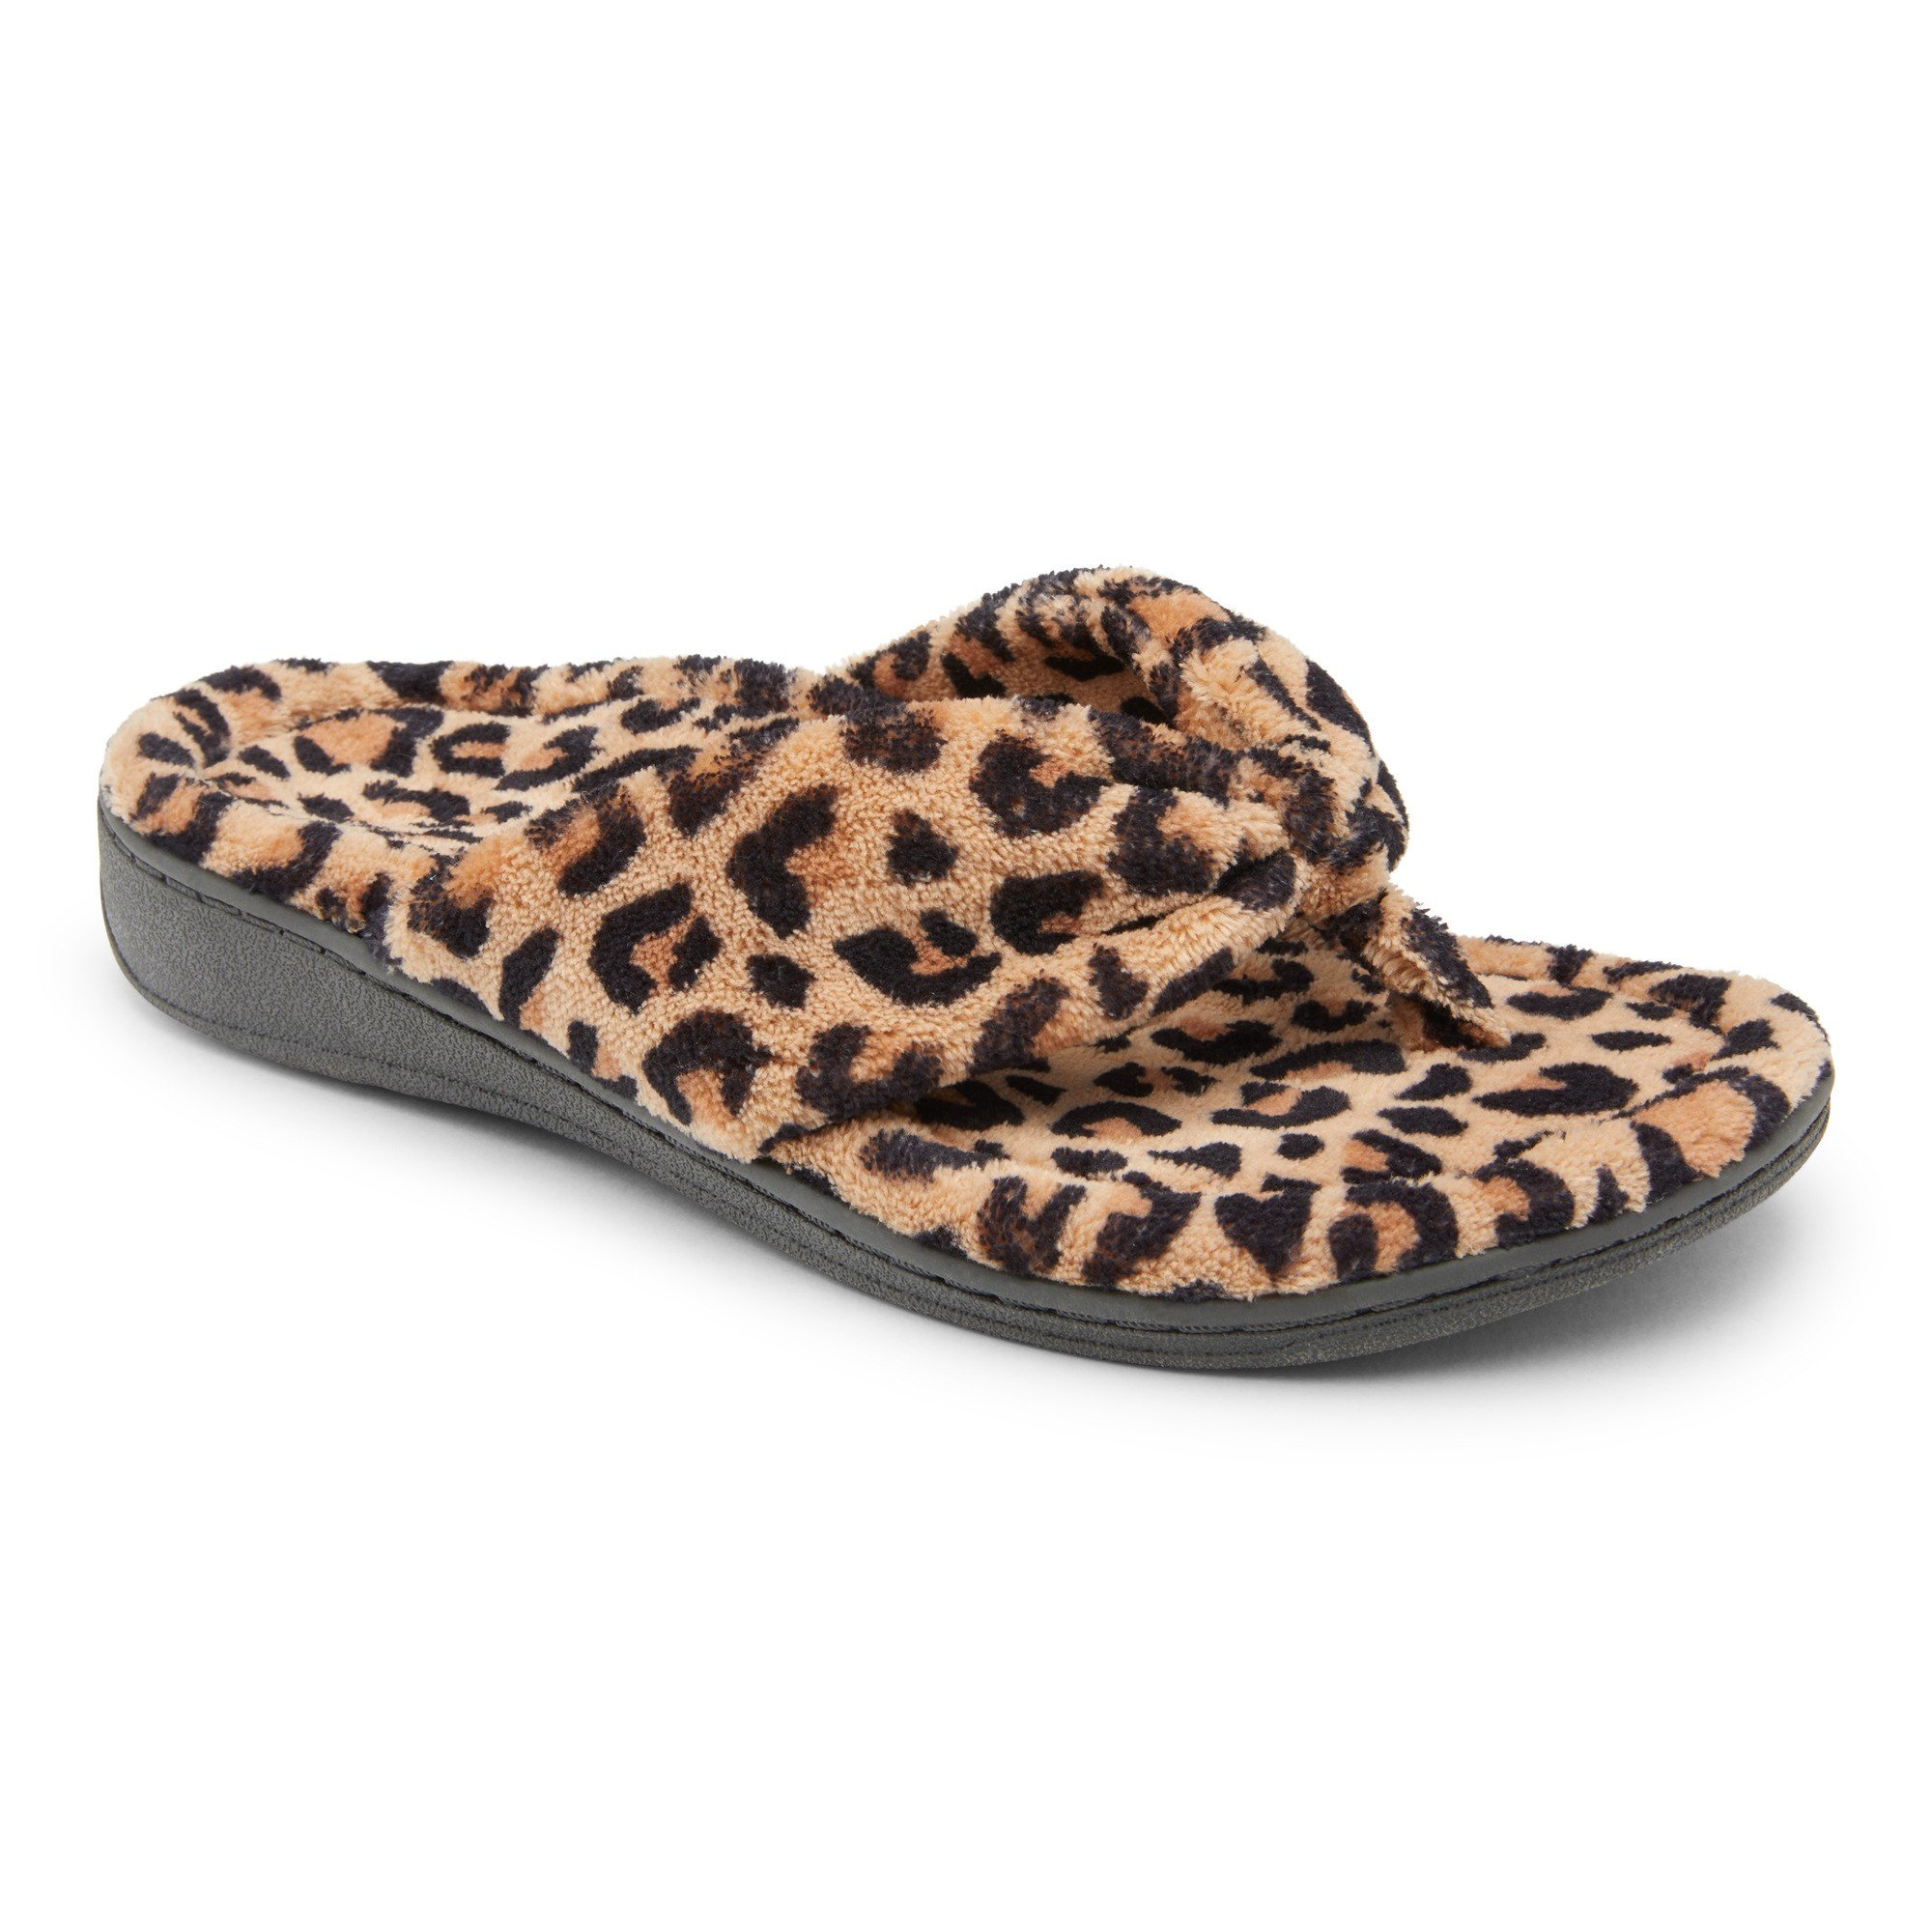 Vionic Gracie Toe Post Slippers - Women's